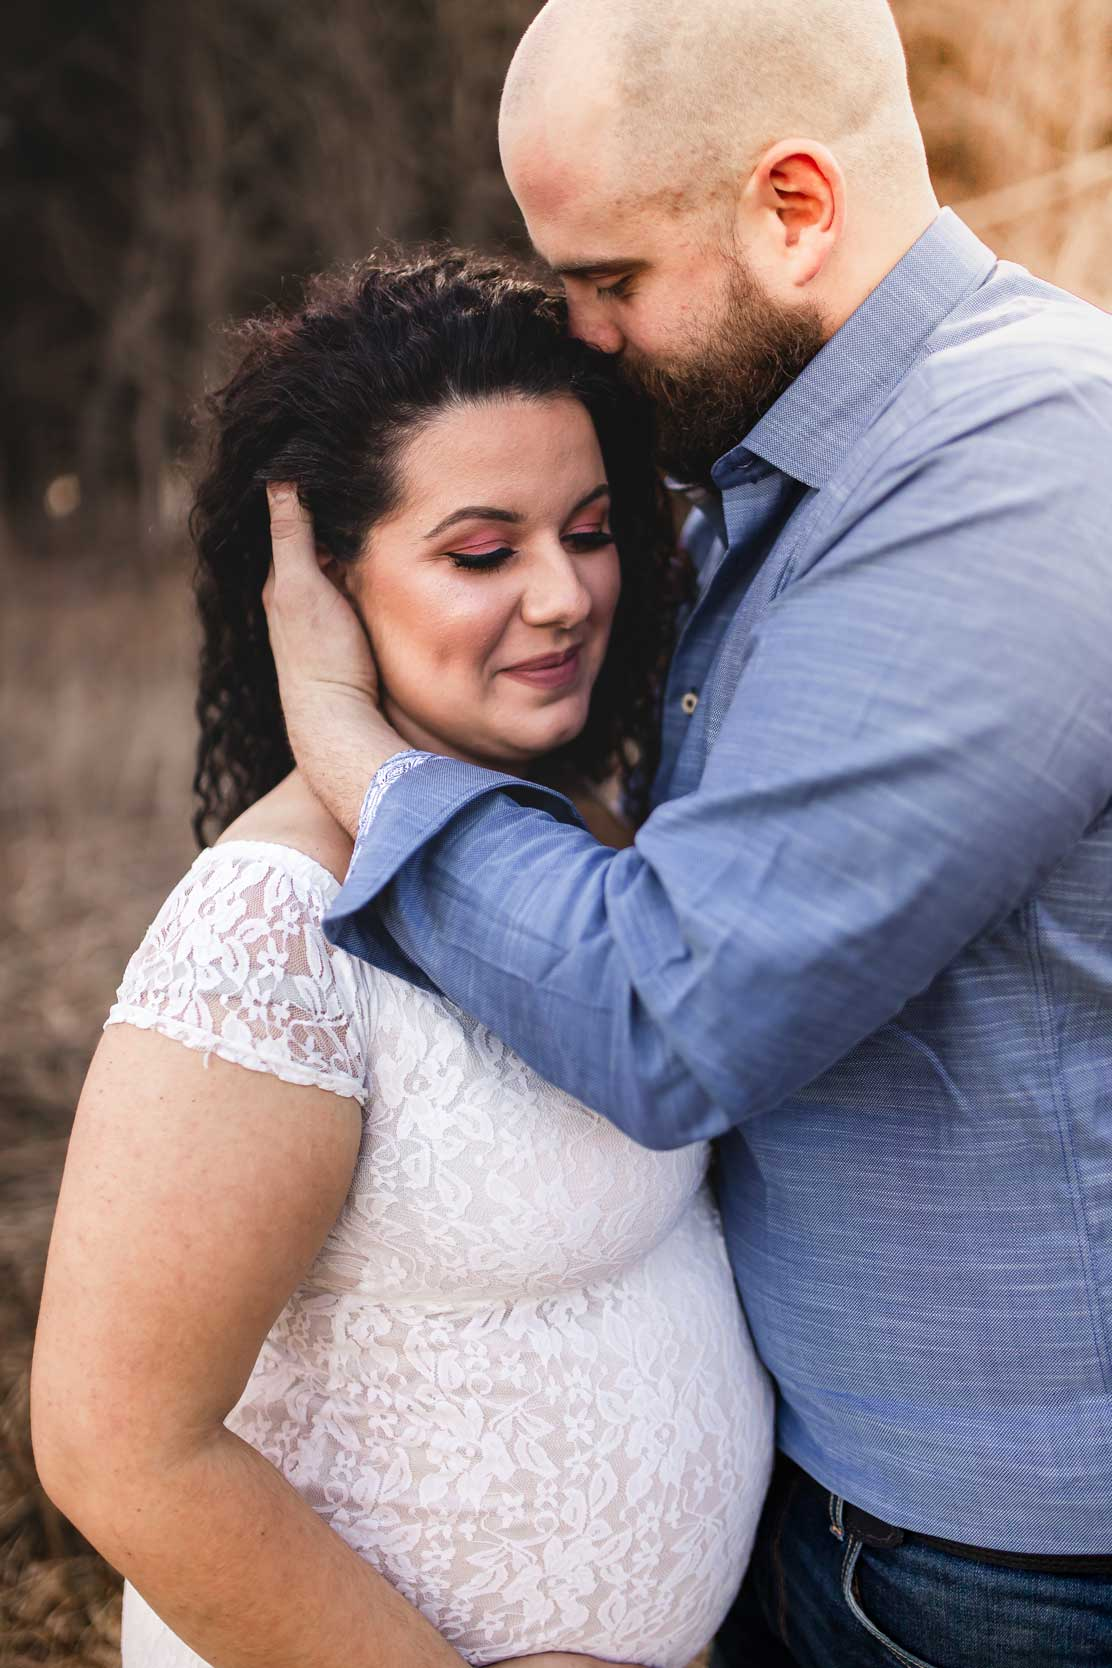 Amy-D-Photography--Maternity-Session--Outdoor-Maternity-Photo--Maternity-Poses--Maternity-Couple-Ideas--Spring-Maternity-Session--Maternity-Photography-13.jpg